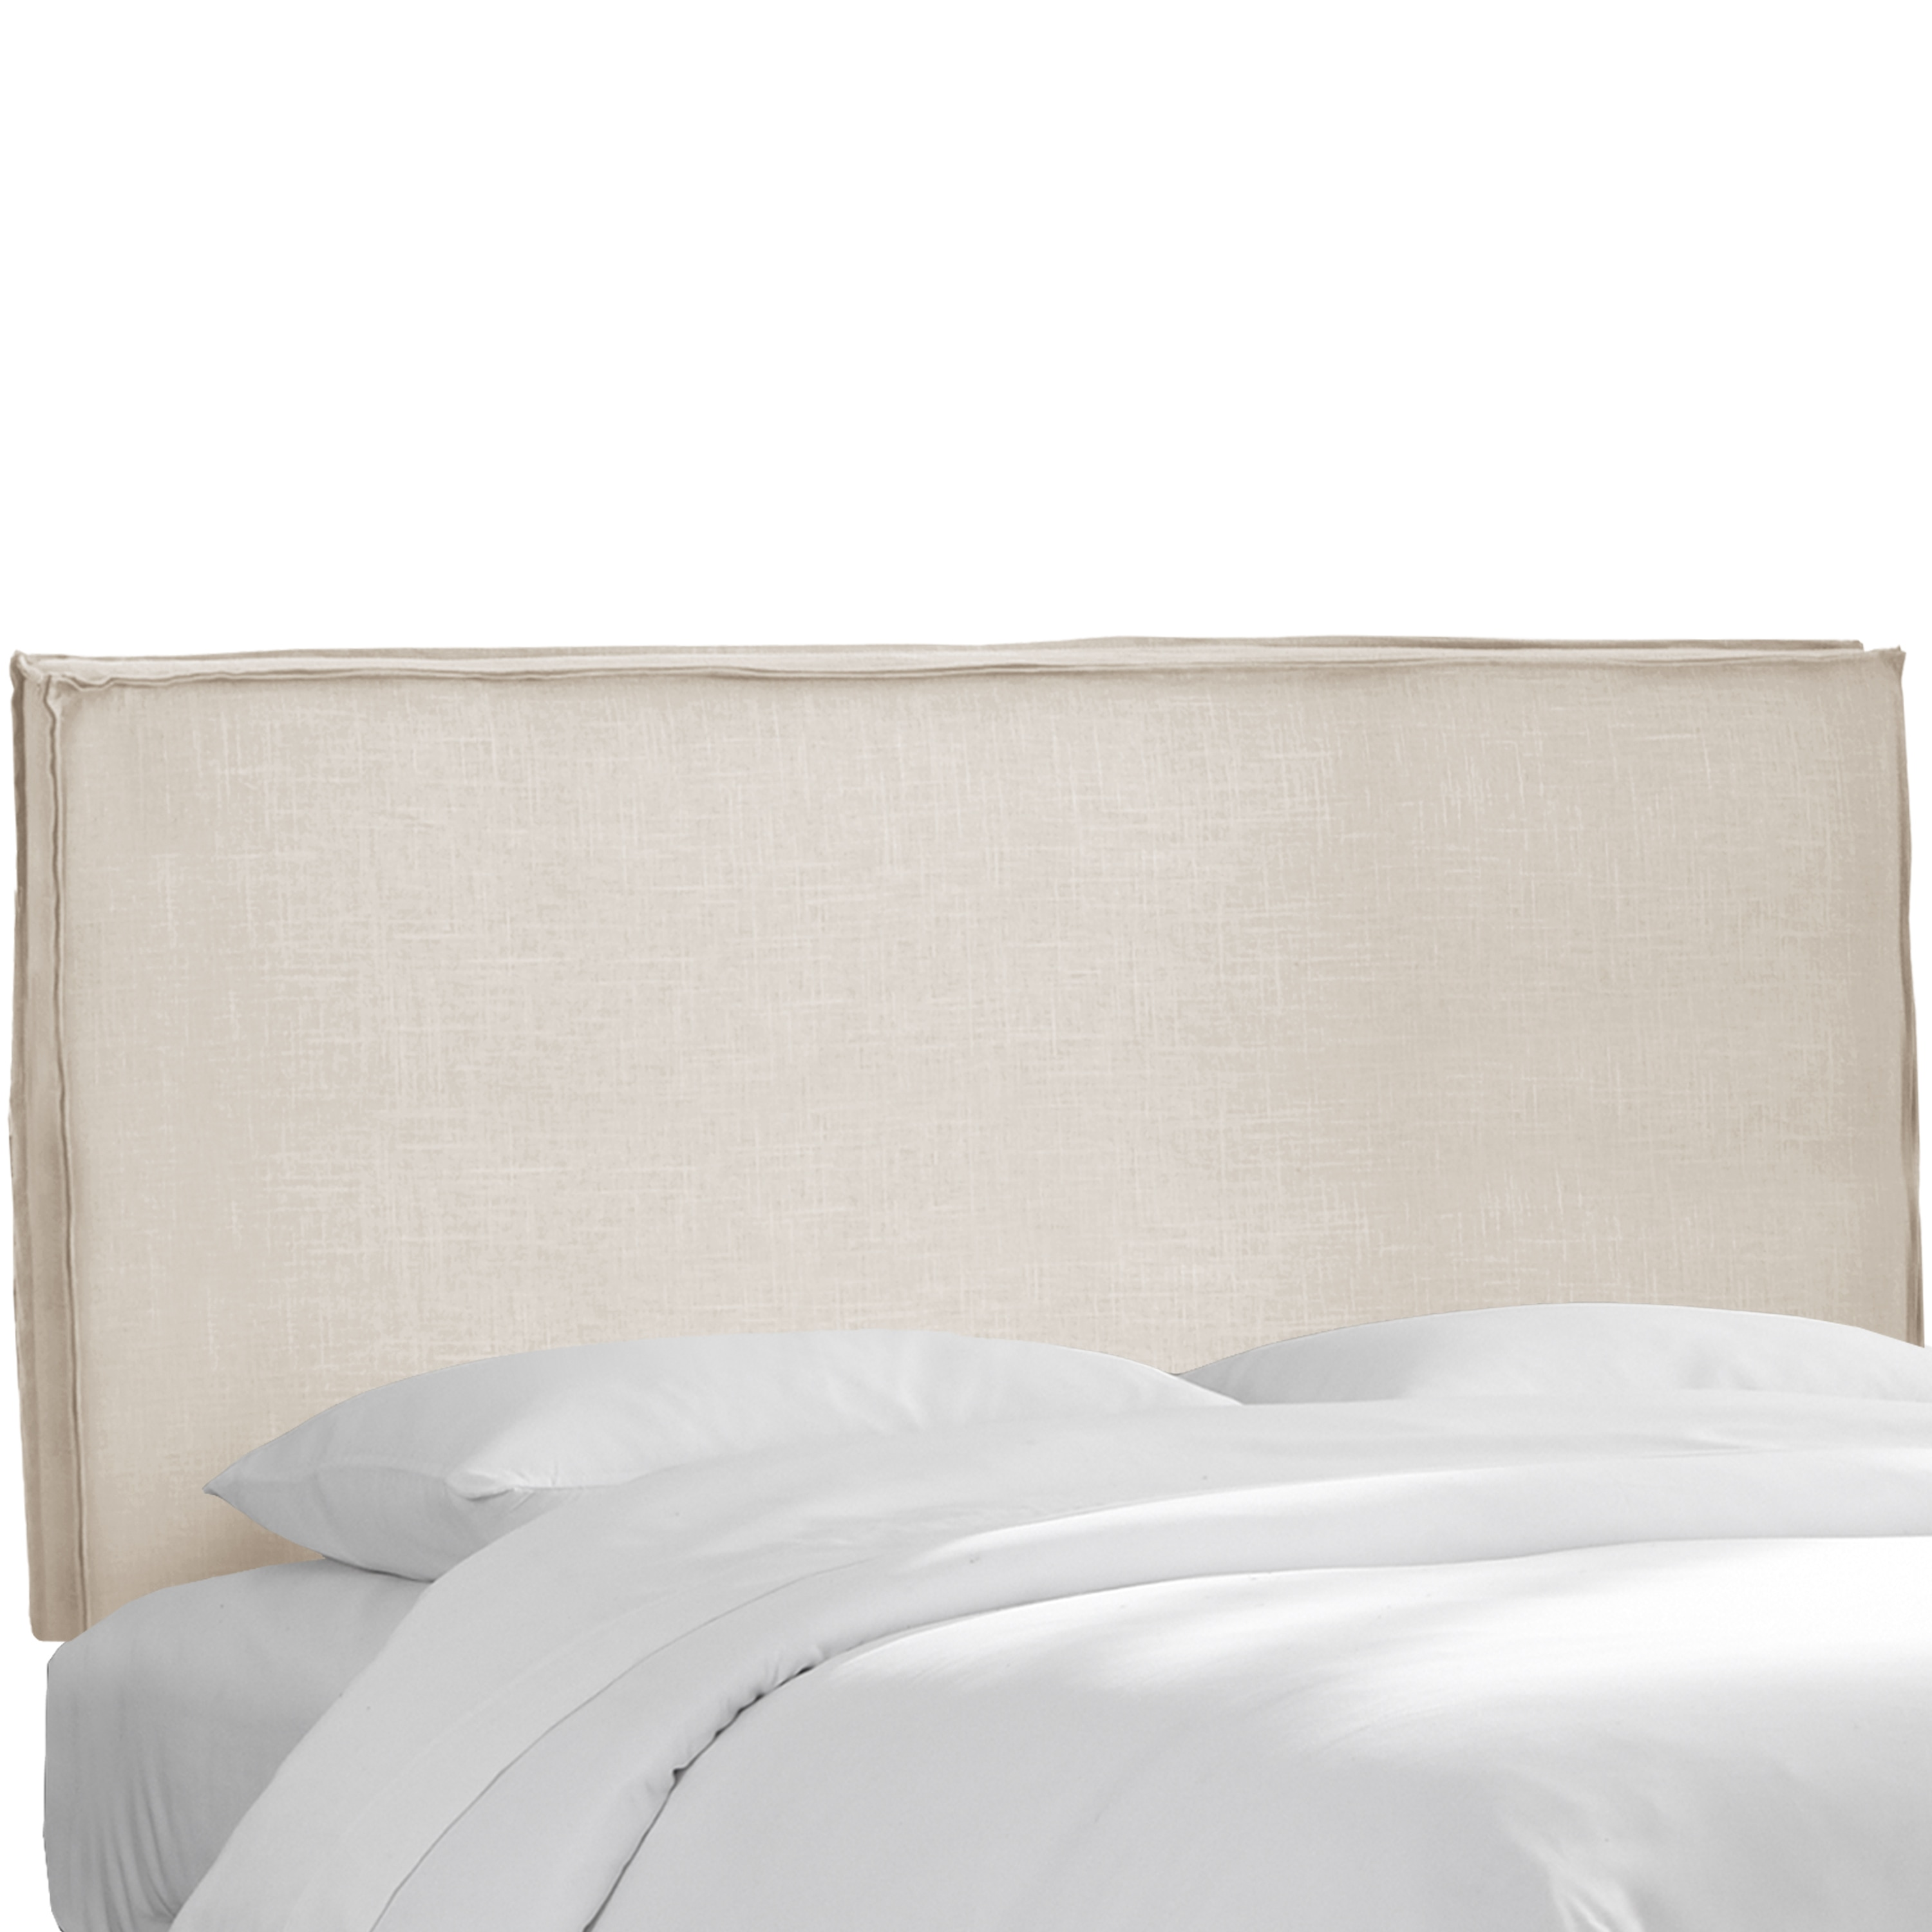 queen headboard shop pottery barn off slipcovered online lewis